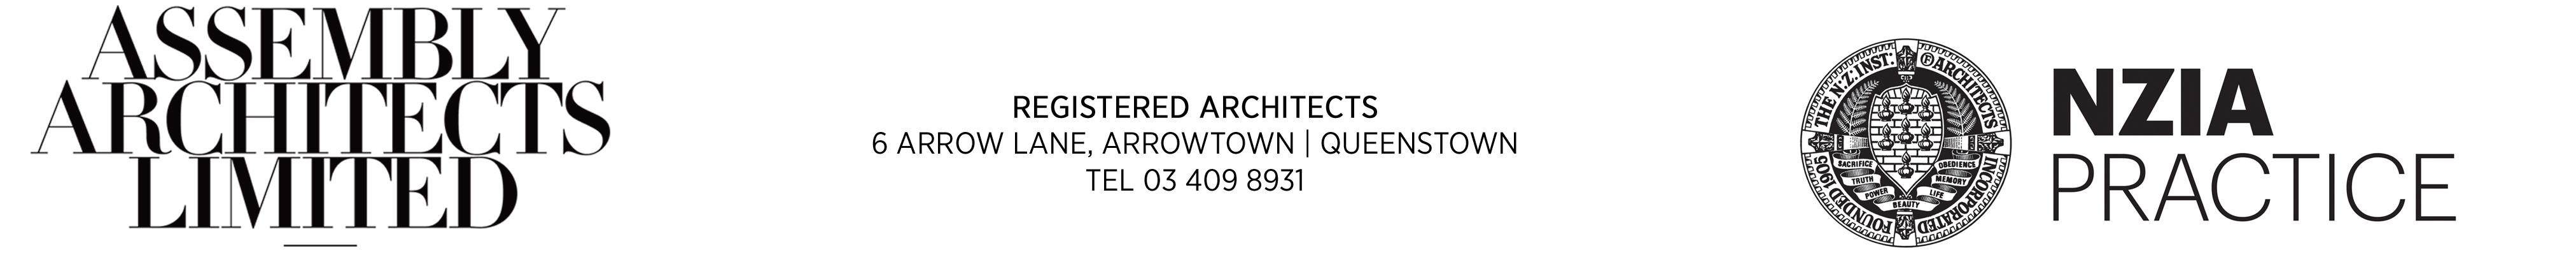 ASSEMBLY-ARCHITECTS-ARROWTOWN-QUEENSTOWN-LOGO